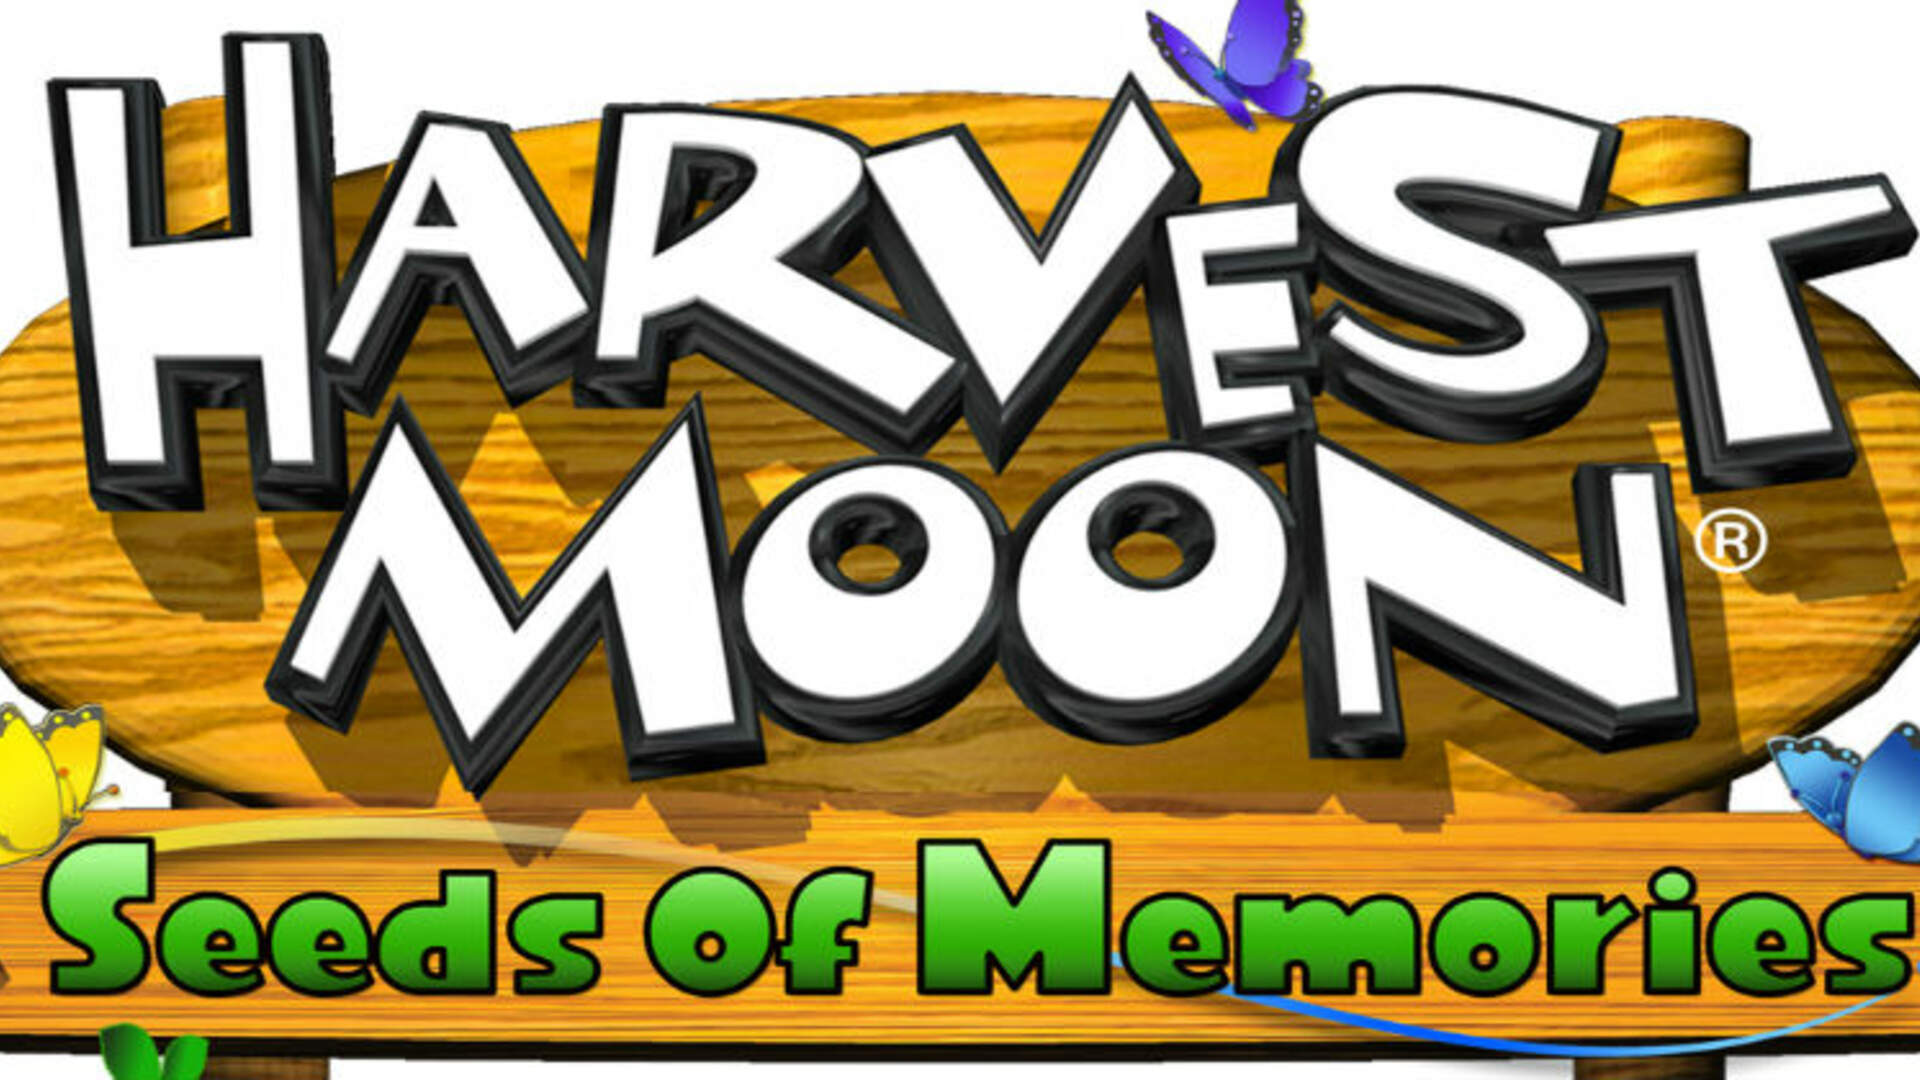 Harvest Moon Comes to Mobile With Harvest Moon: Seeds of Memories